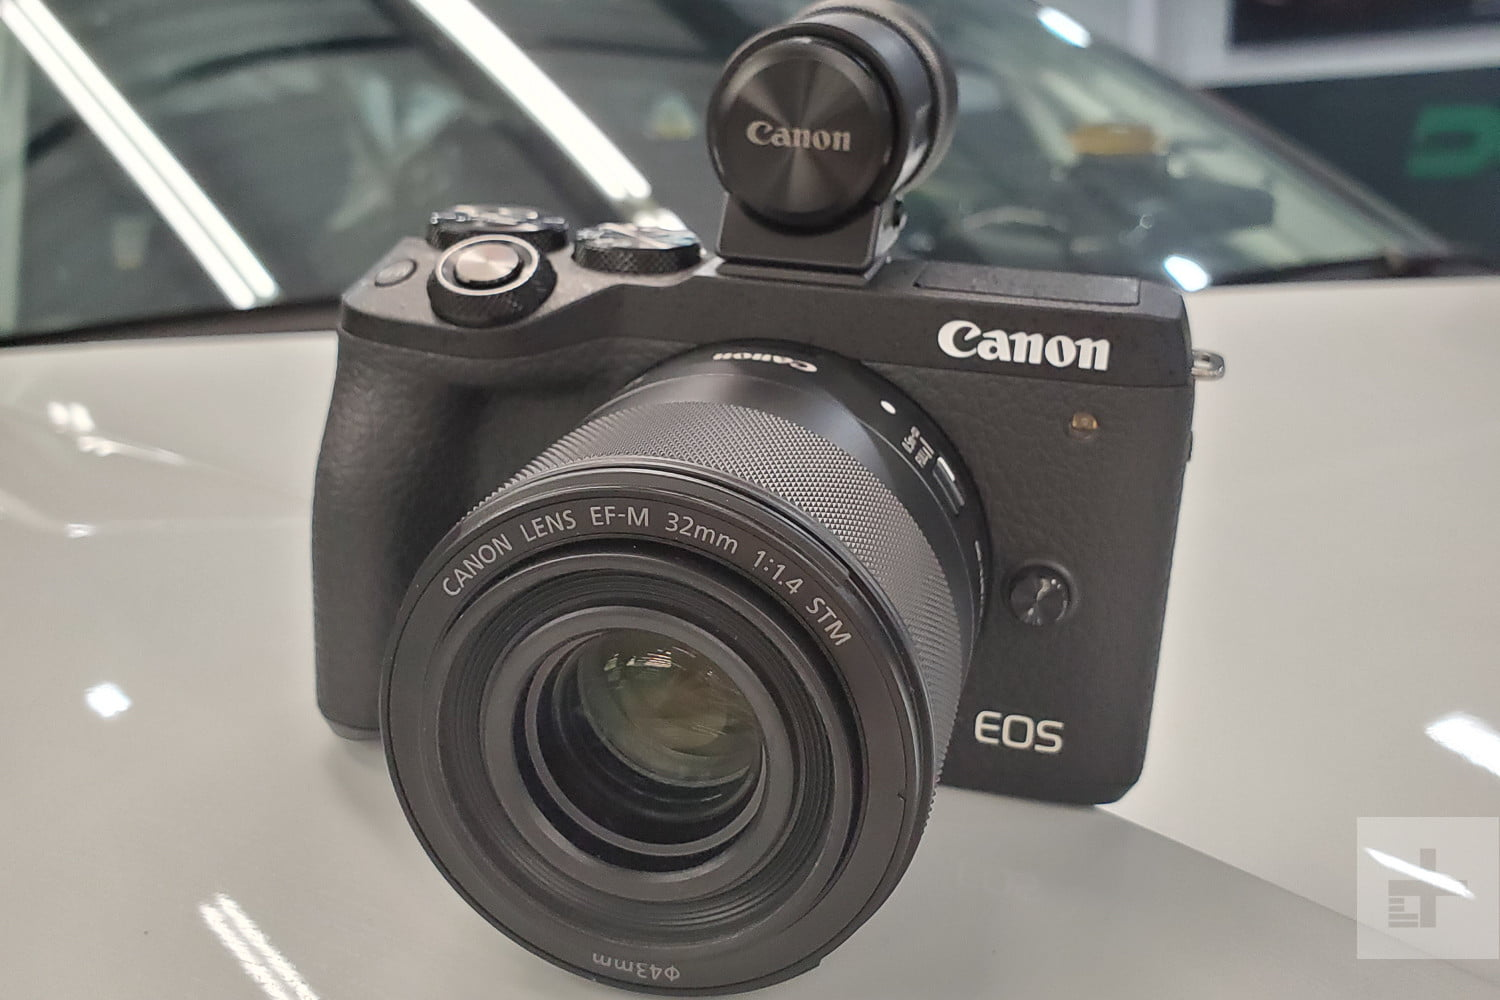 canon eos 90d m6 mark ii set new bar 32mp aps c hands on 4